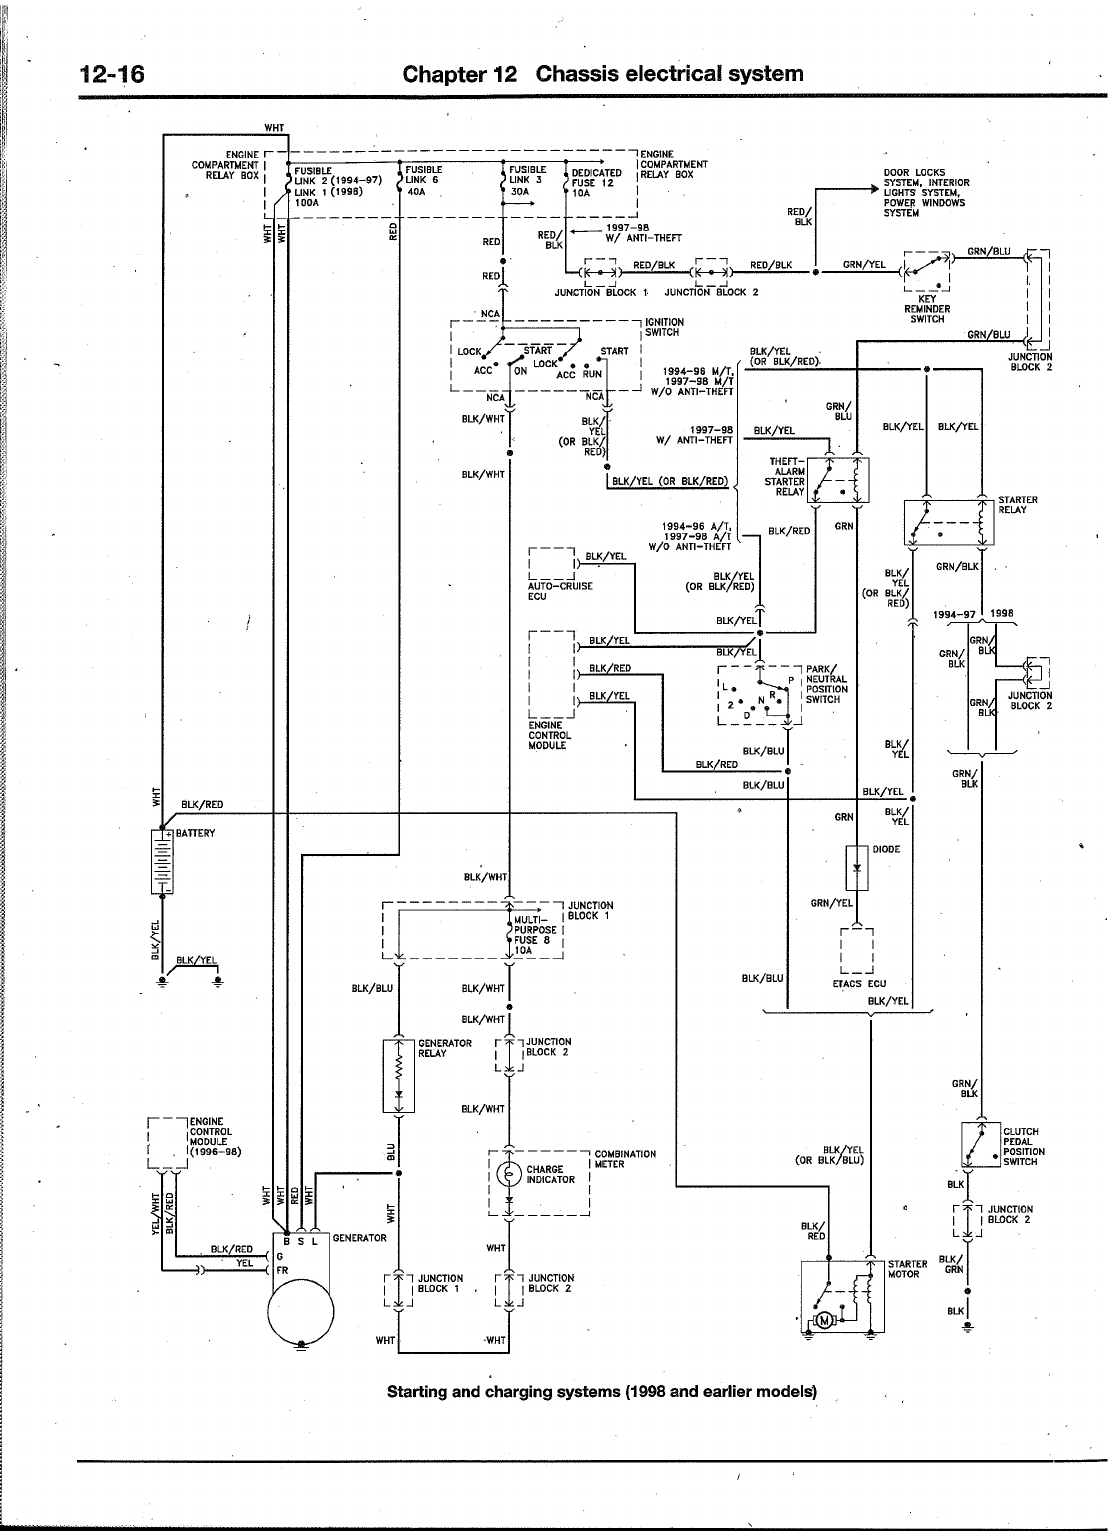 mitsubishi galant 1994 2003 misc document wiring diagram pdf rh manuals co wiring diagram mitsubishi 4g63 wiring diagram mitsubishi plfy-p36namu-e